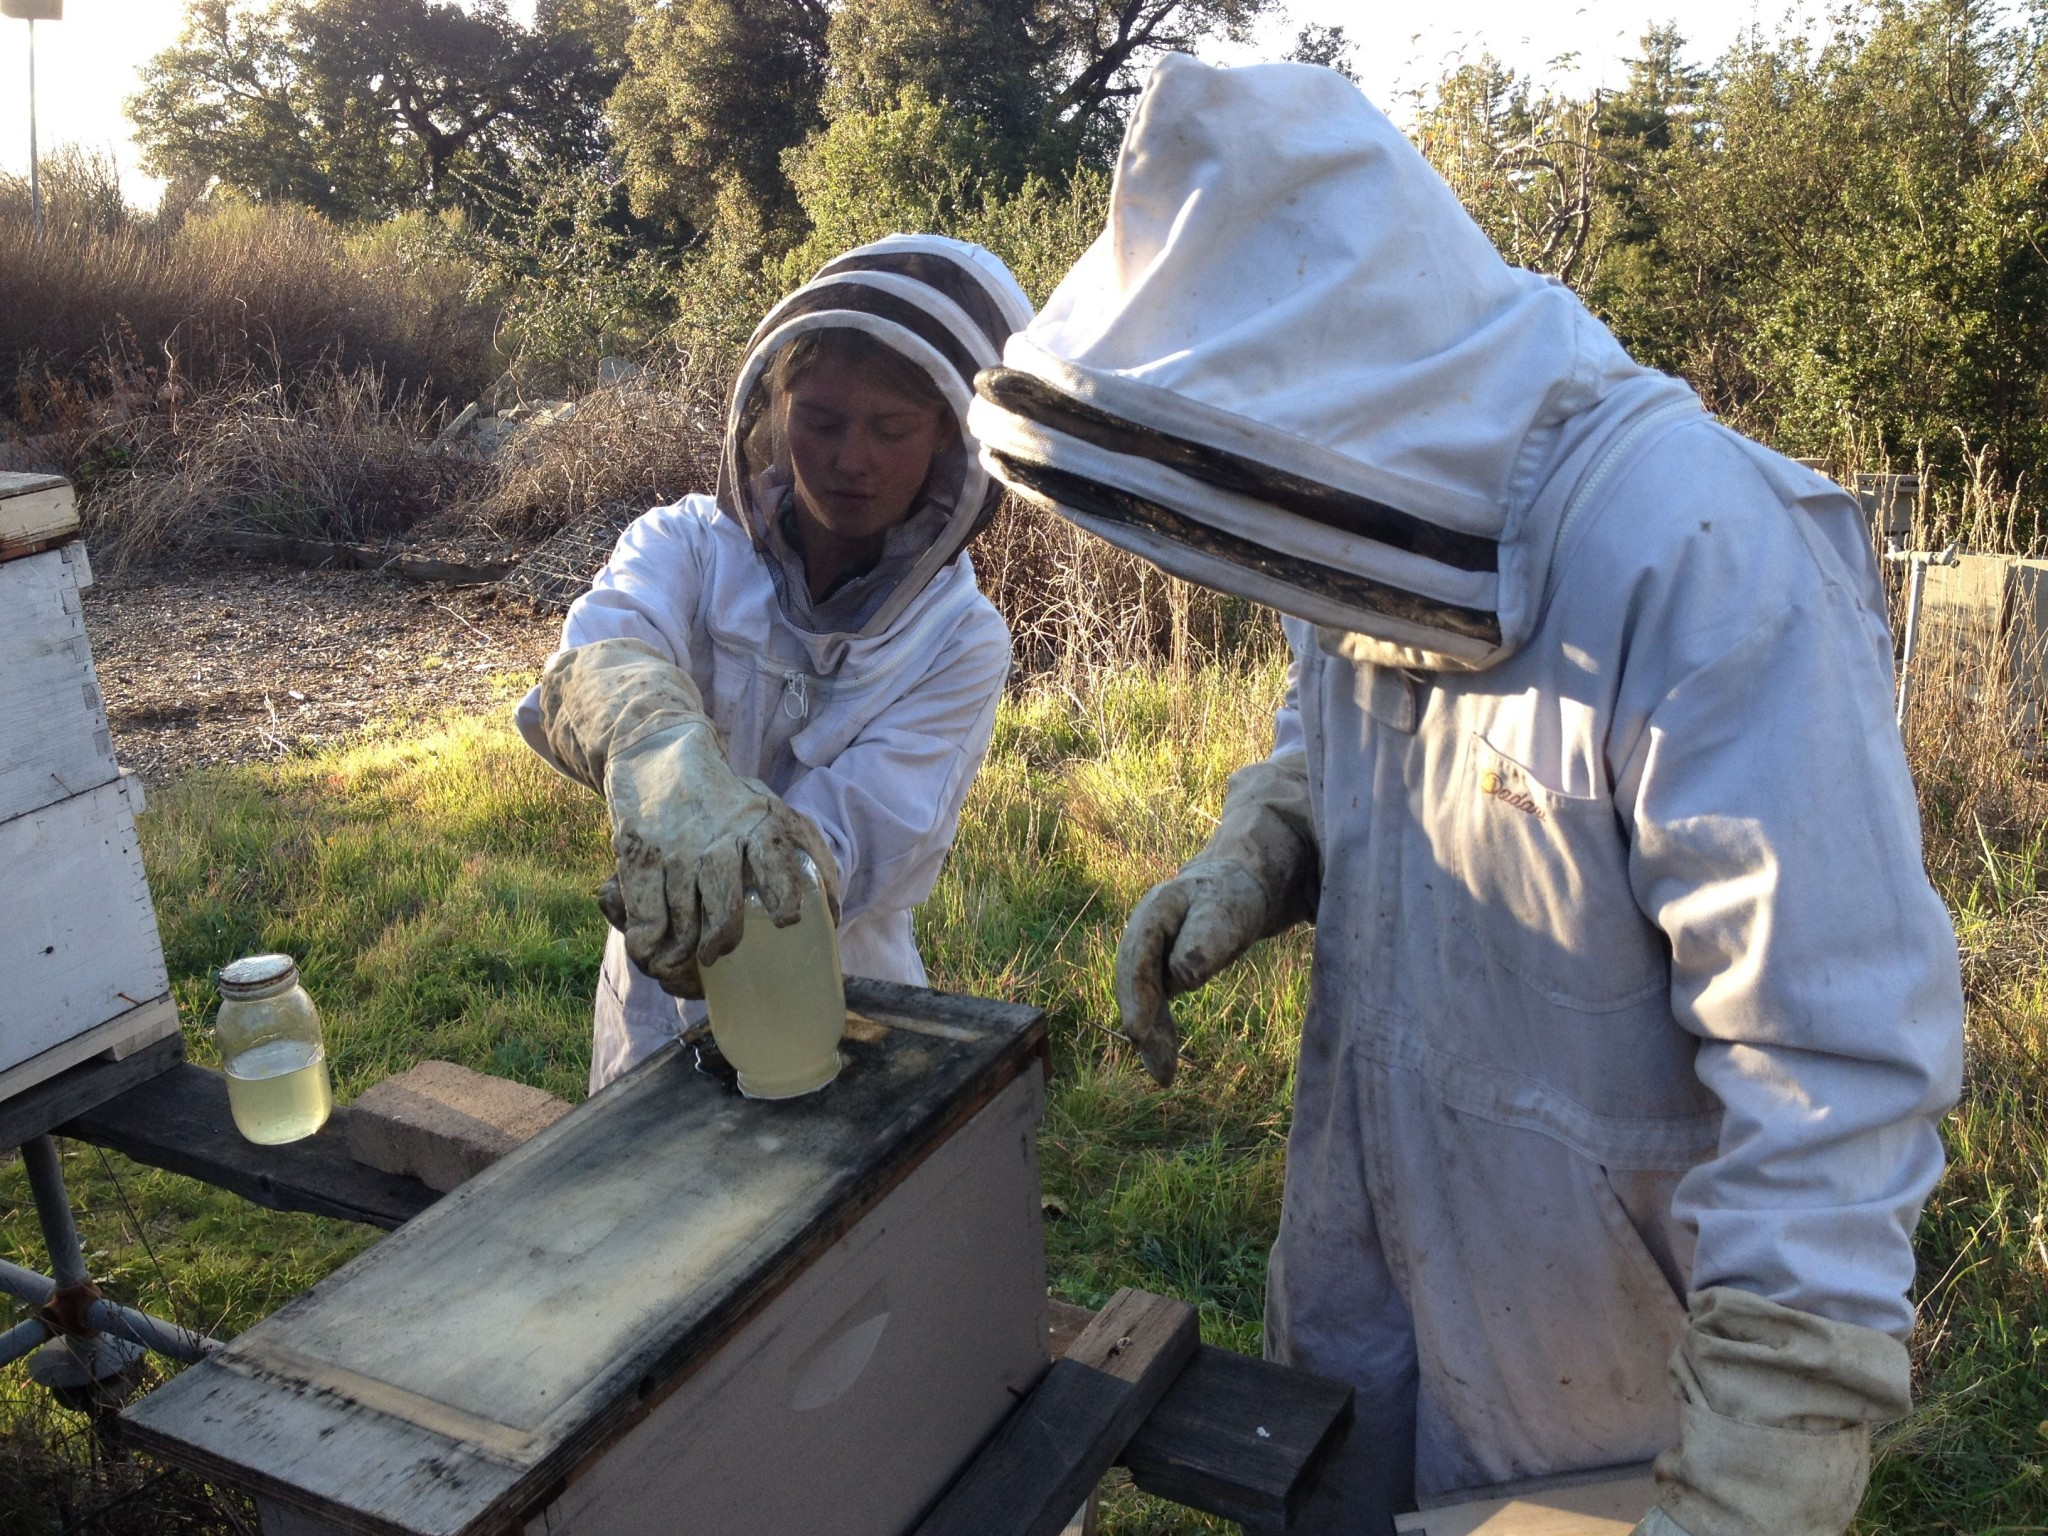 Two people in beekeeping suits work with a hive.